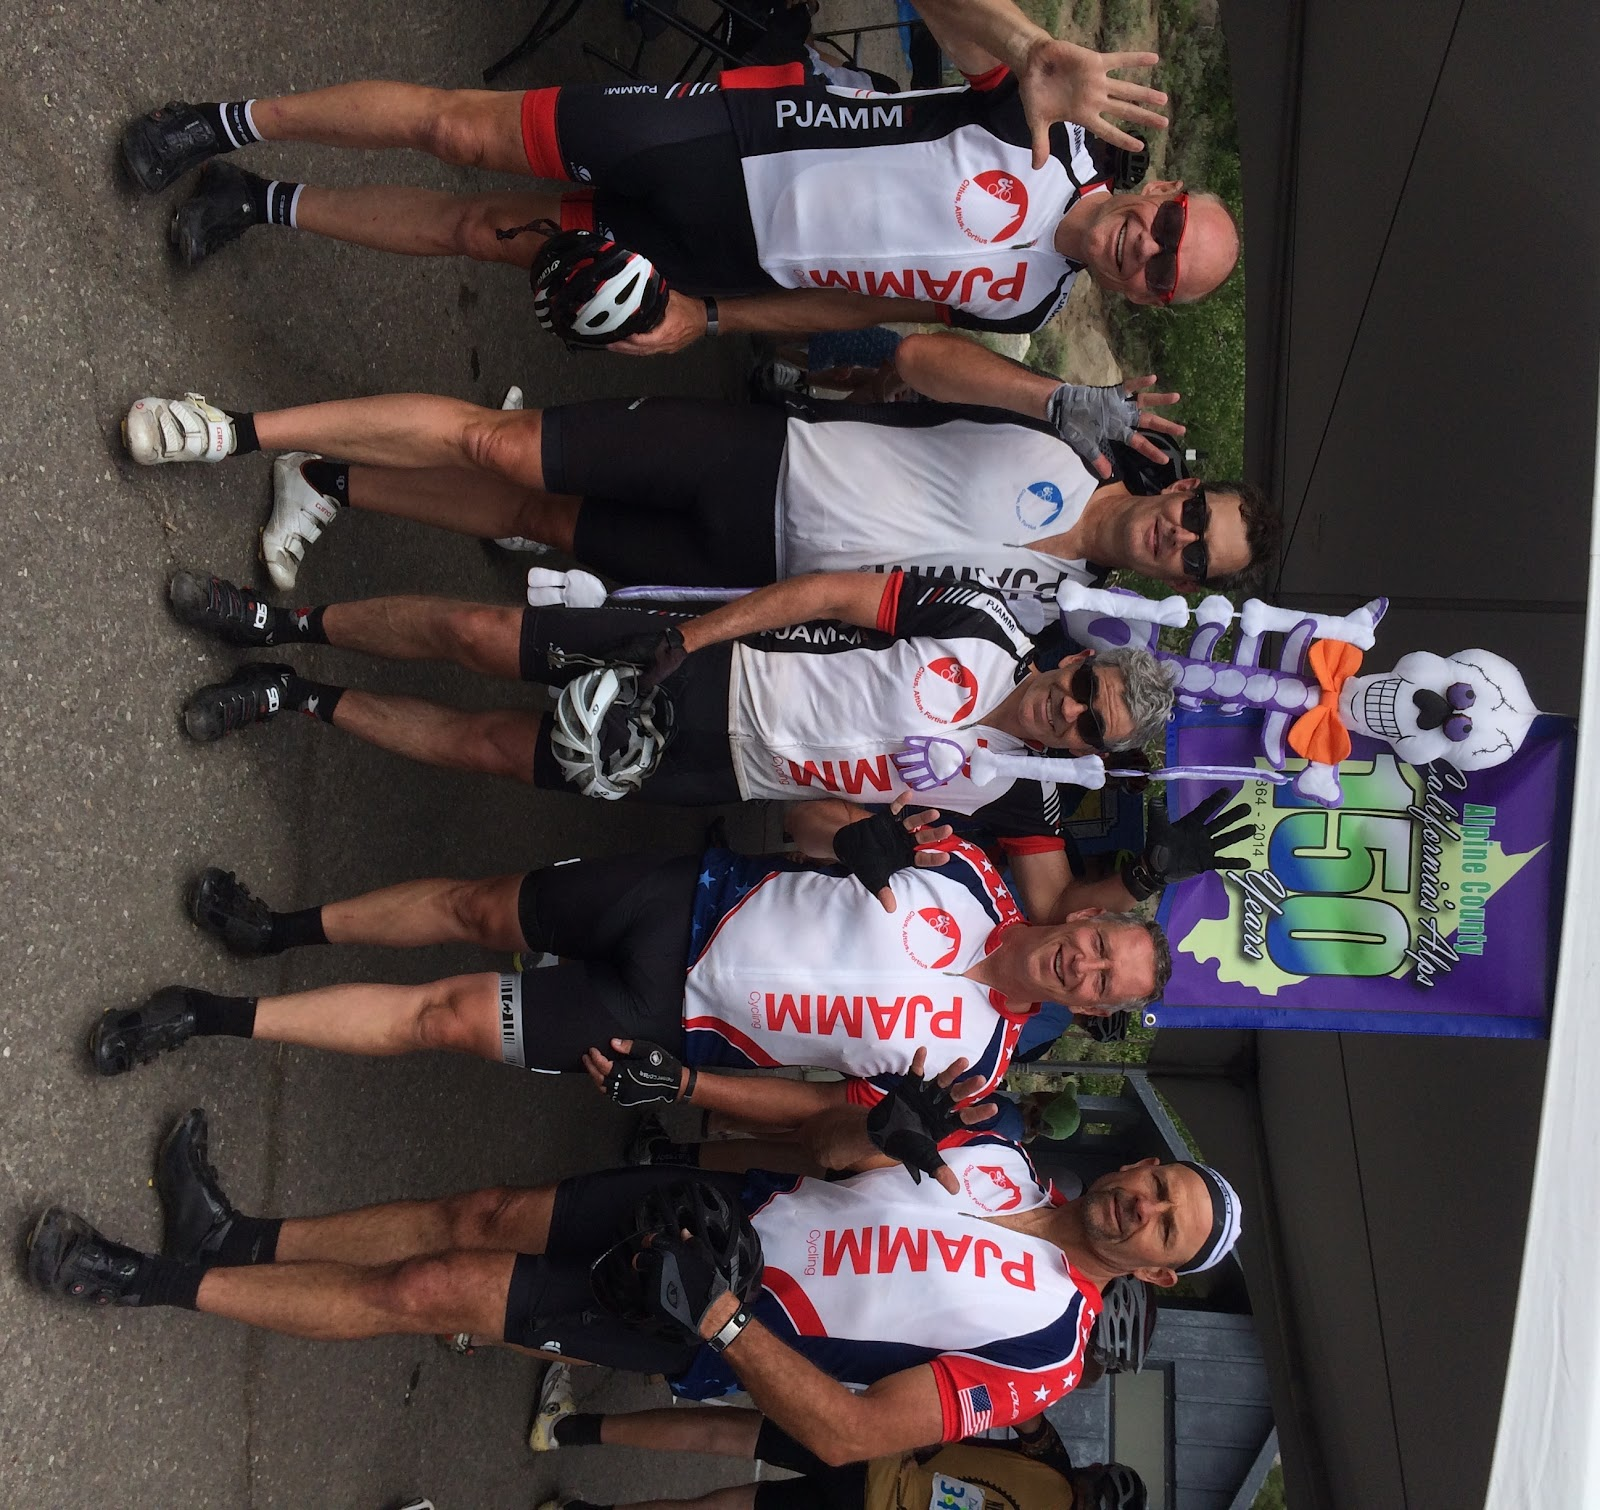 Cycling Monitor Pass East and West - PJAMM cyclists at finish of Death Ride holding up 5 fingers for 5 passes - skeleton